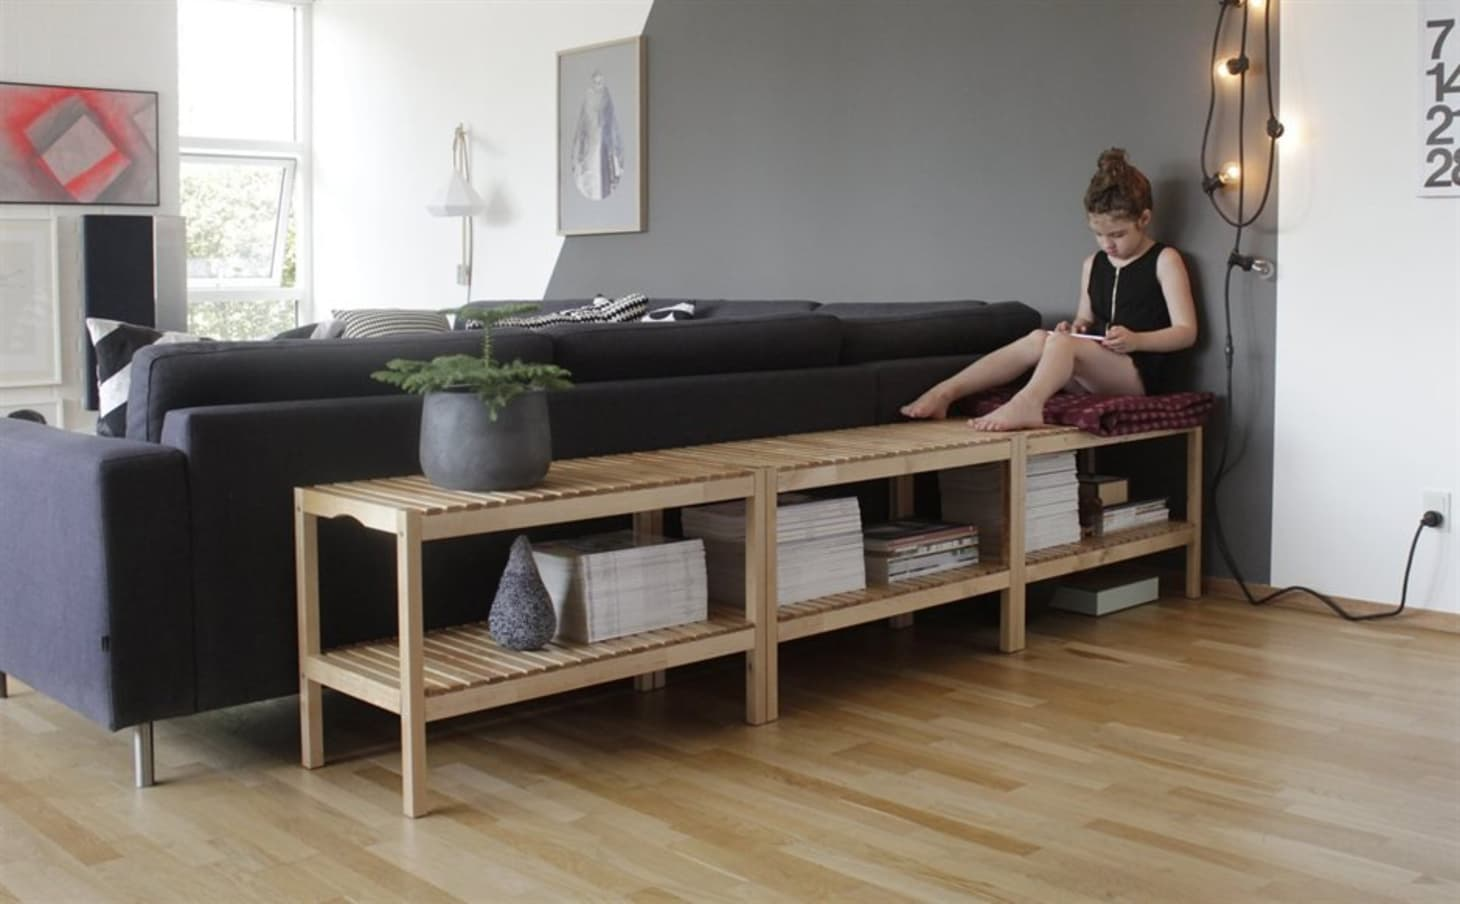 Stupendous Ikea Molger Bench Ideas Hacks Apartment Therapy Ibusinesslaw Wood Chair Design Ideas Ibusinesslaworg